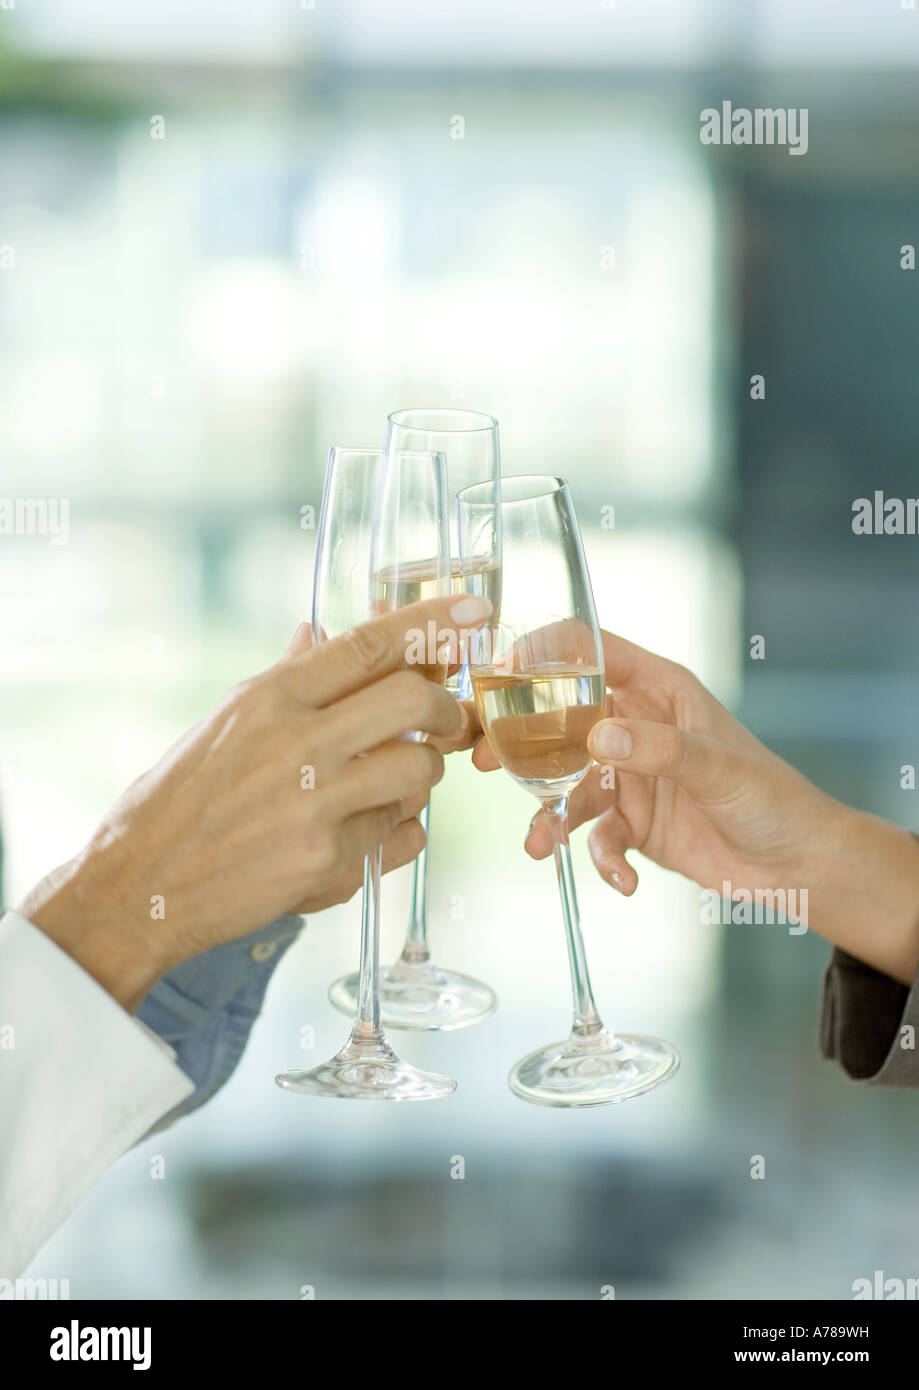 Toasting with glasses of champagne, cropped view of hands - Stock Image